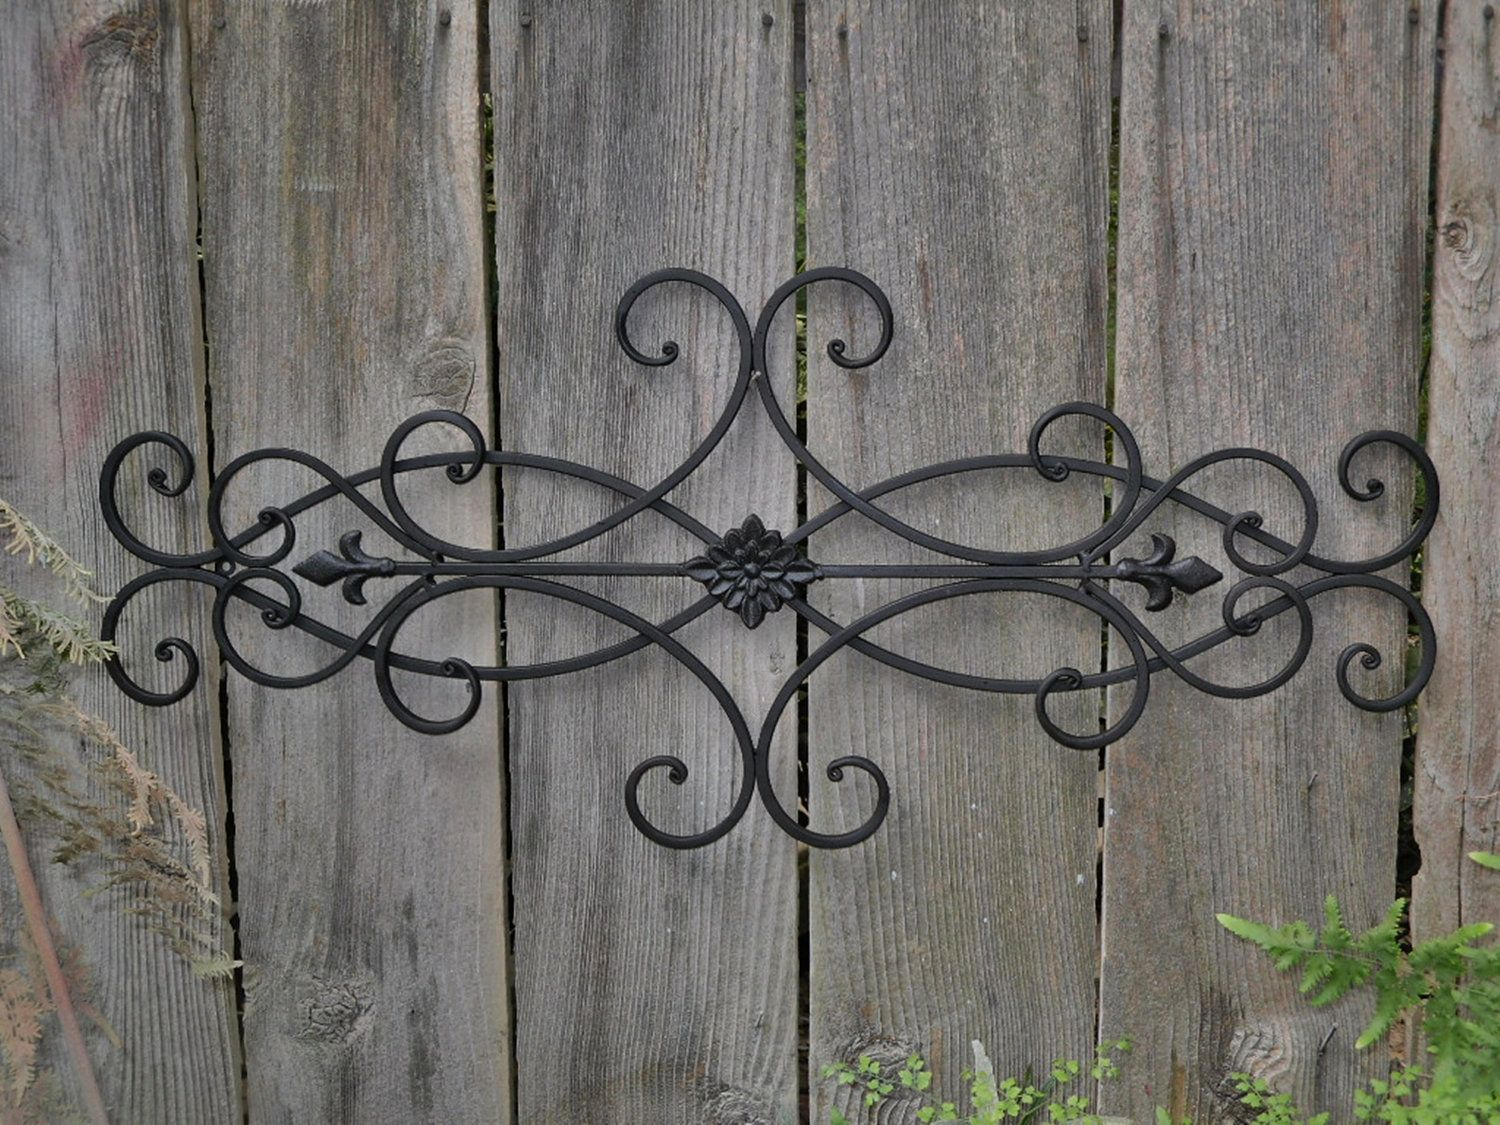 Decorative Metal Wall Art Wrought Iron Wall Decor Indoor Outdoor Cottage Style Fleur De Exterior Wall Art Iron Wall Decor Wrought Iron Wall Decor